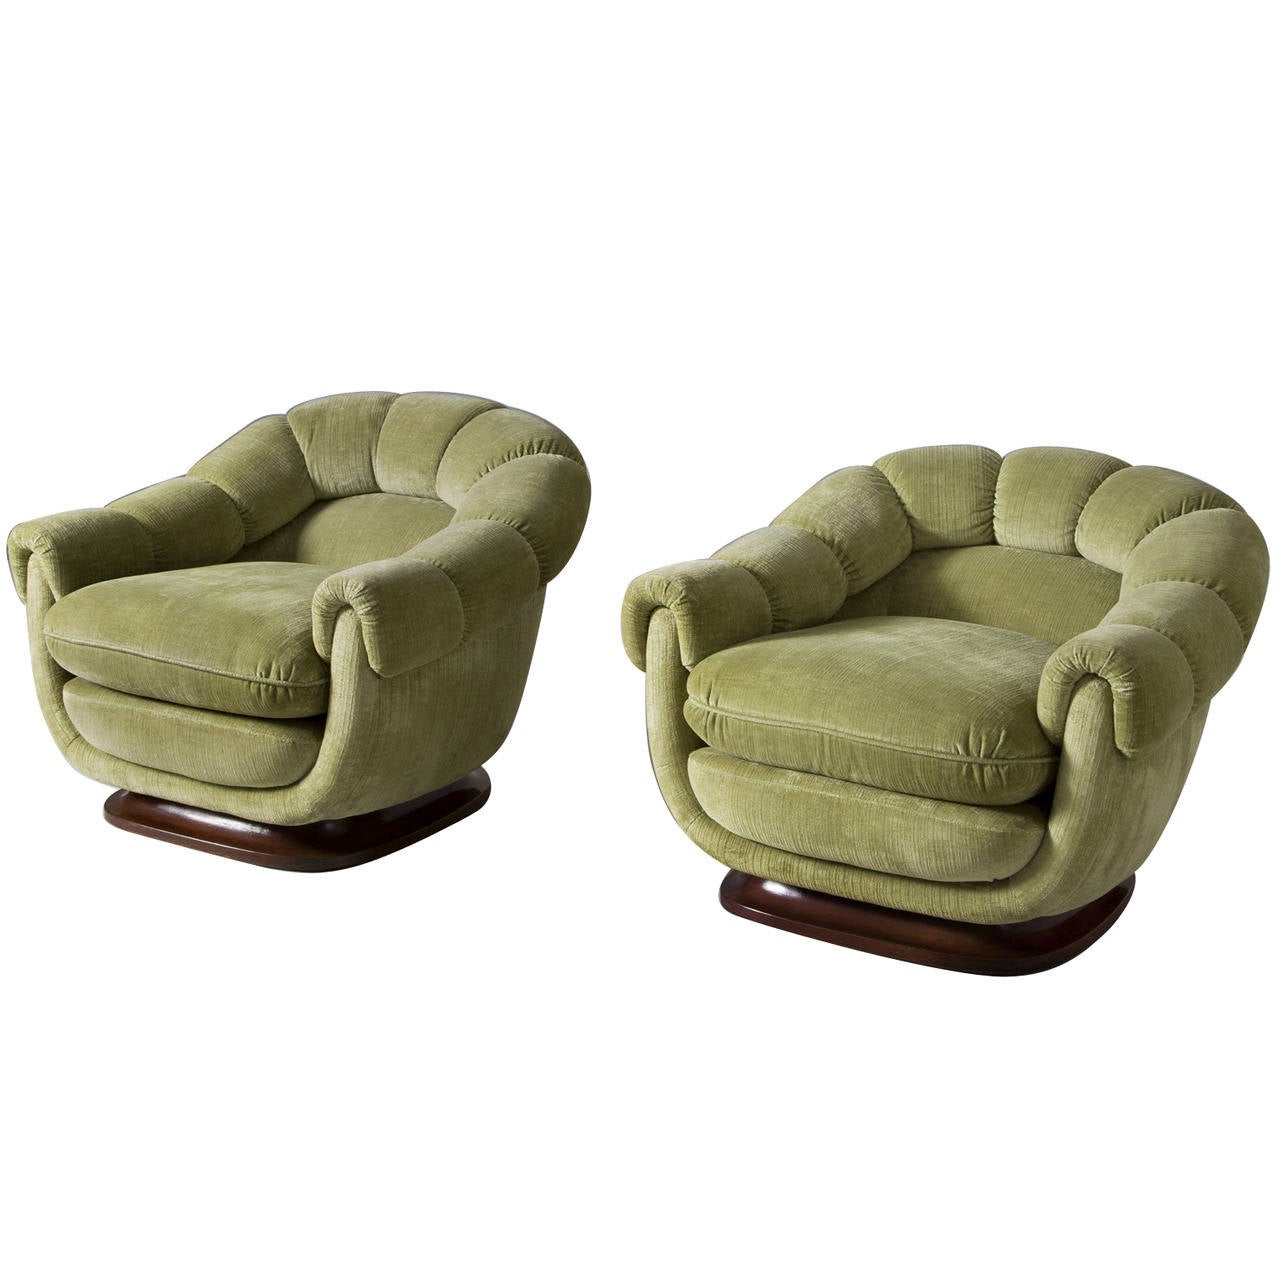 Two Elegant Club Chairs With Round Shapes For Sale At 1stdibs